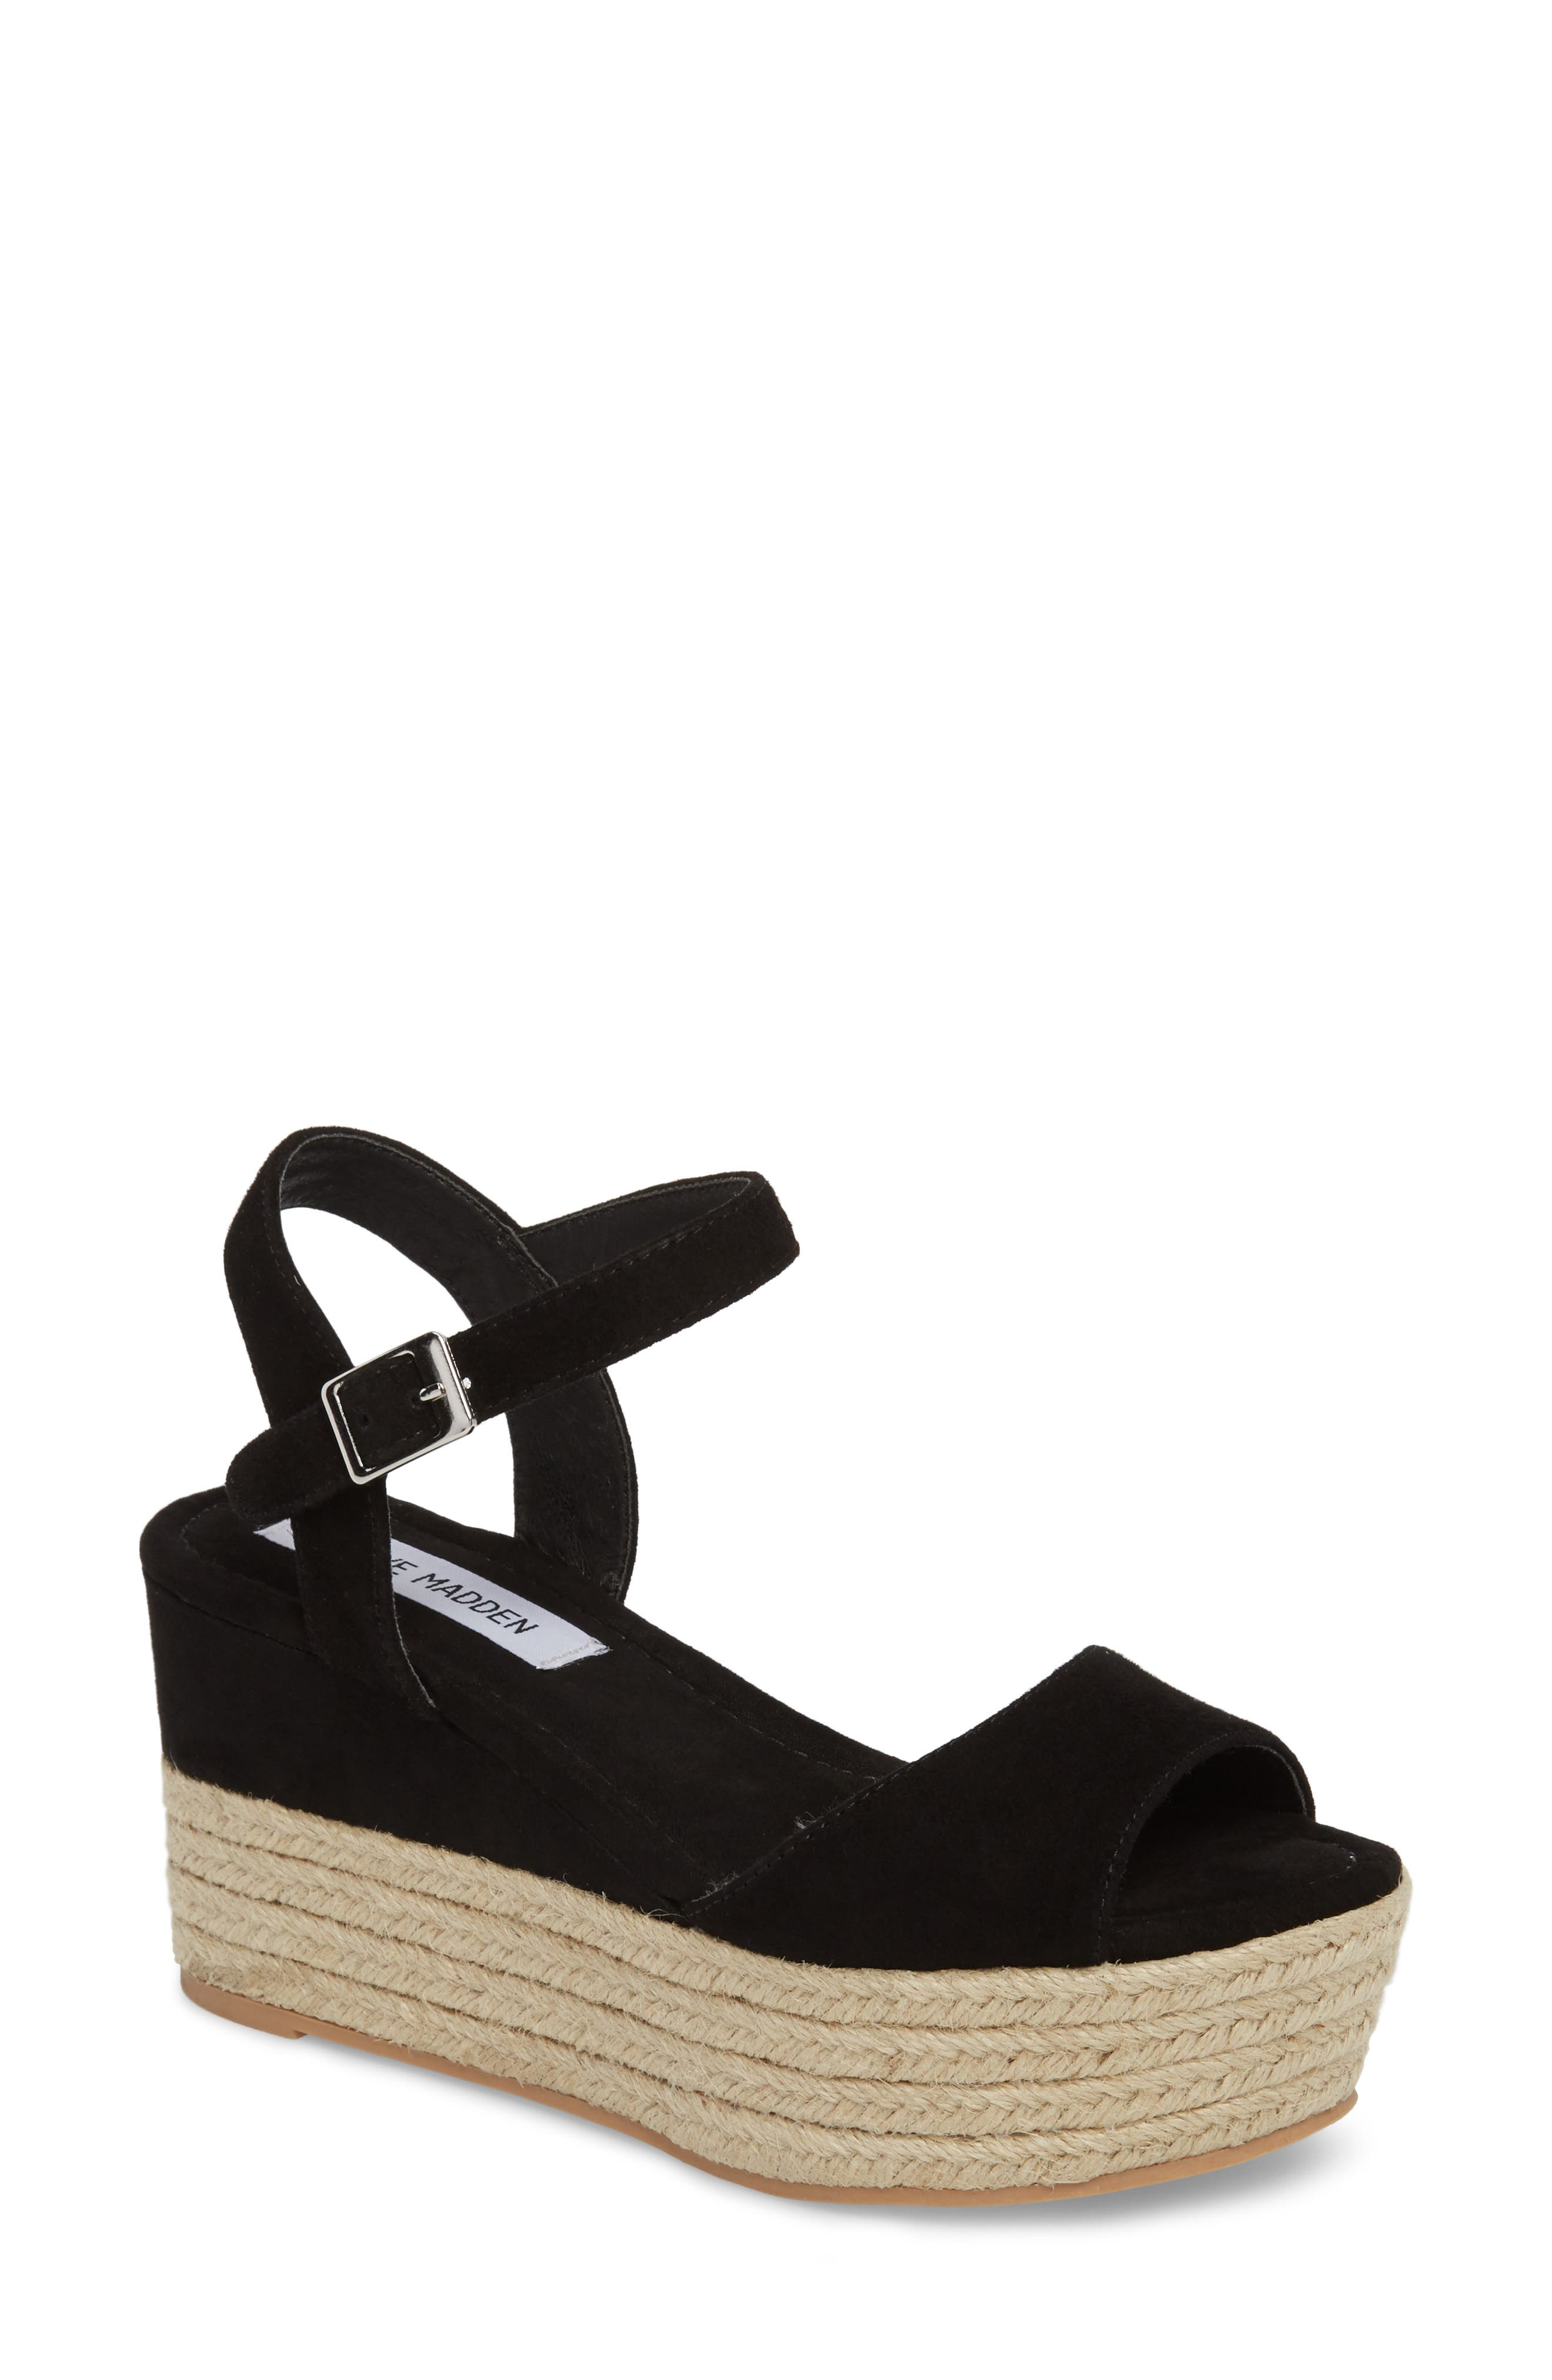 Kianna Espadrille Wedge Sandal,                         Main,                         color, BLACK SUEDE